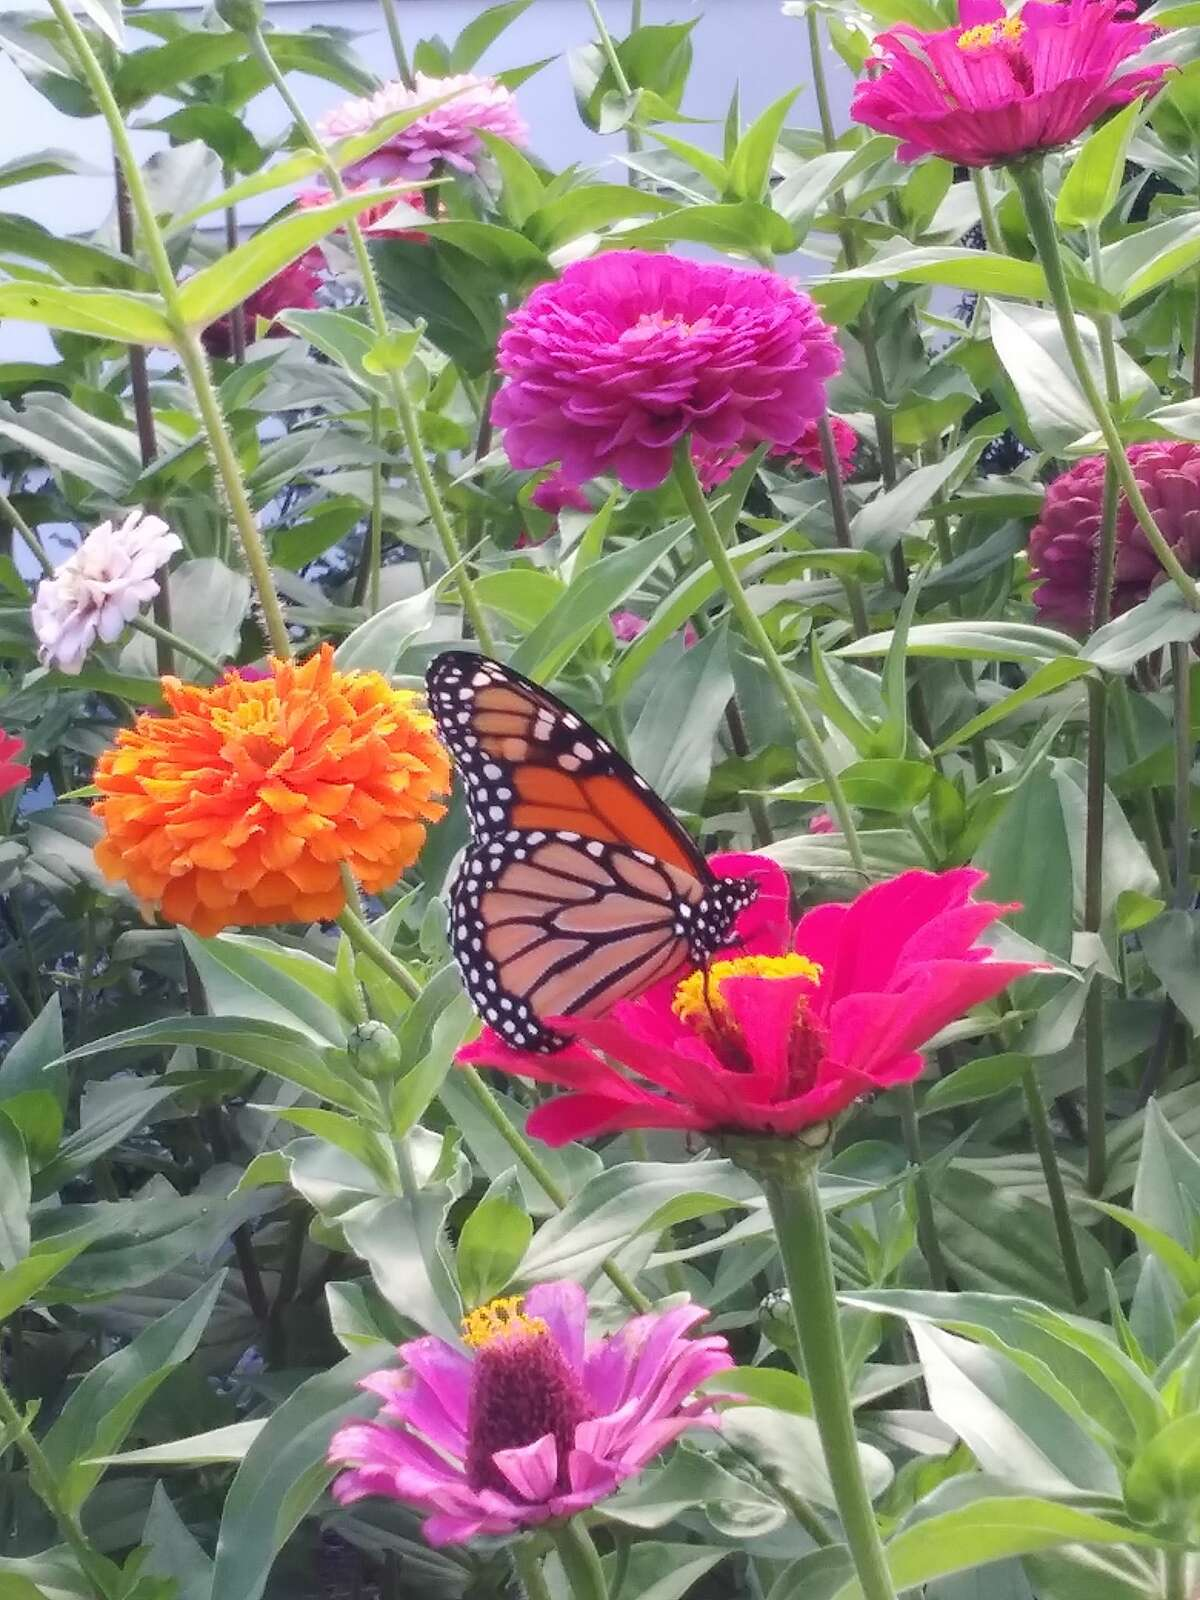 Some people believe the cardinal is a visit from above, Watervliet resident Linda Zablocky's family believes it's the butterflies and they love her zinnias in this photo from September.